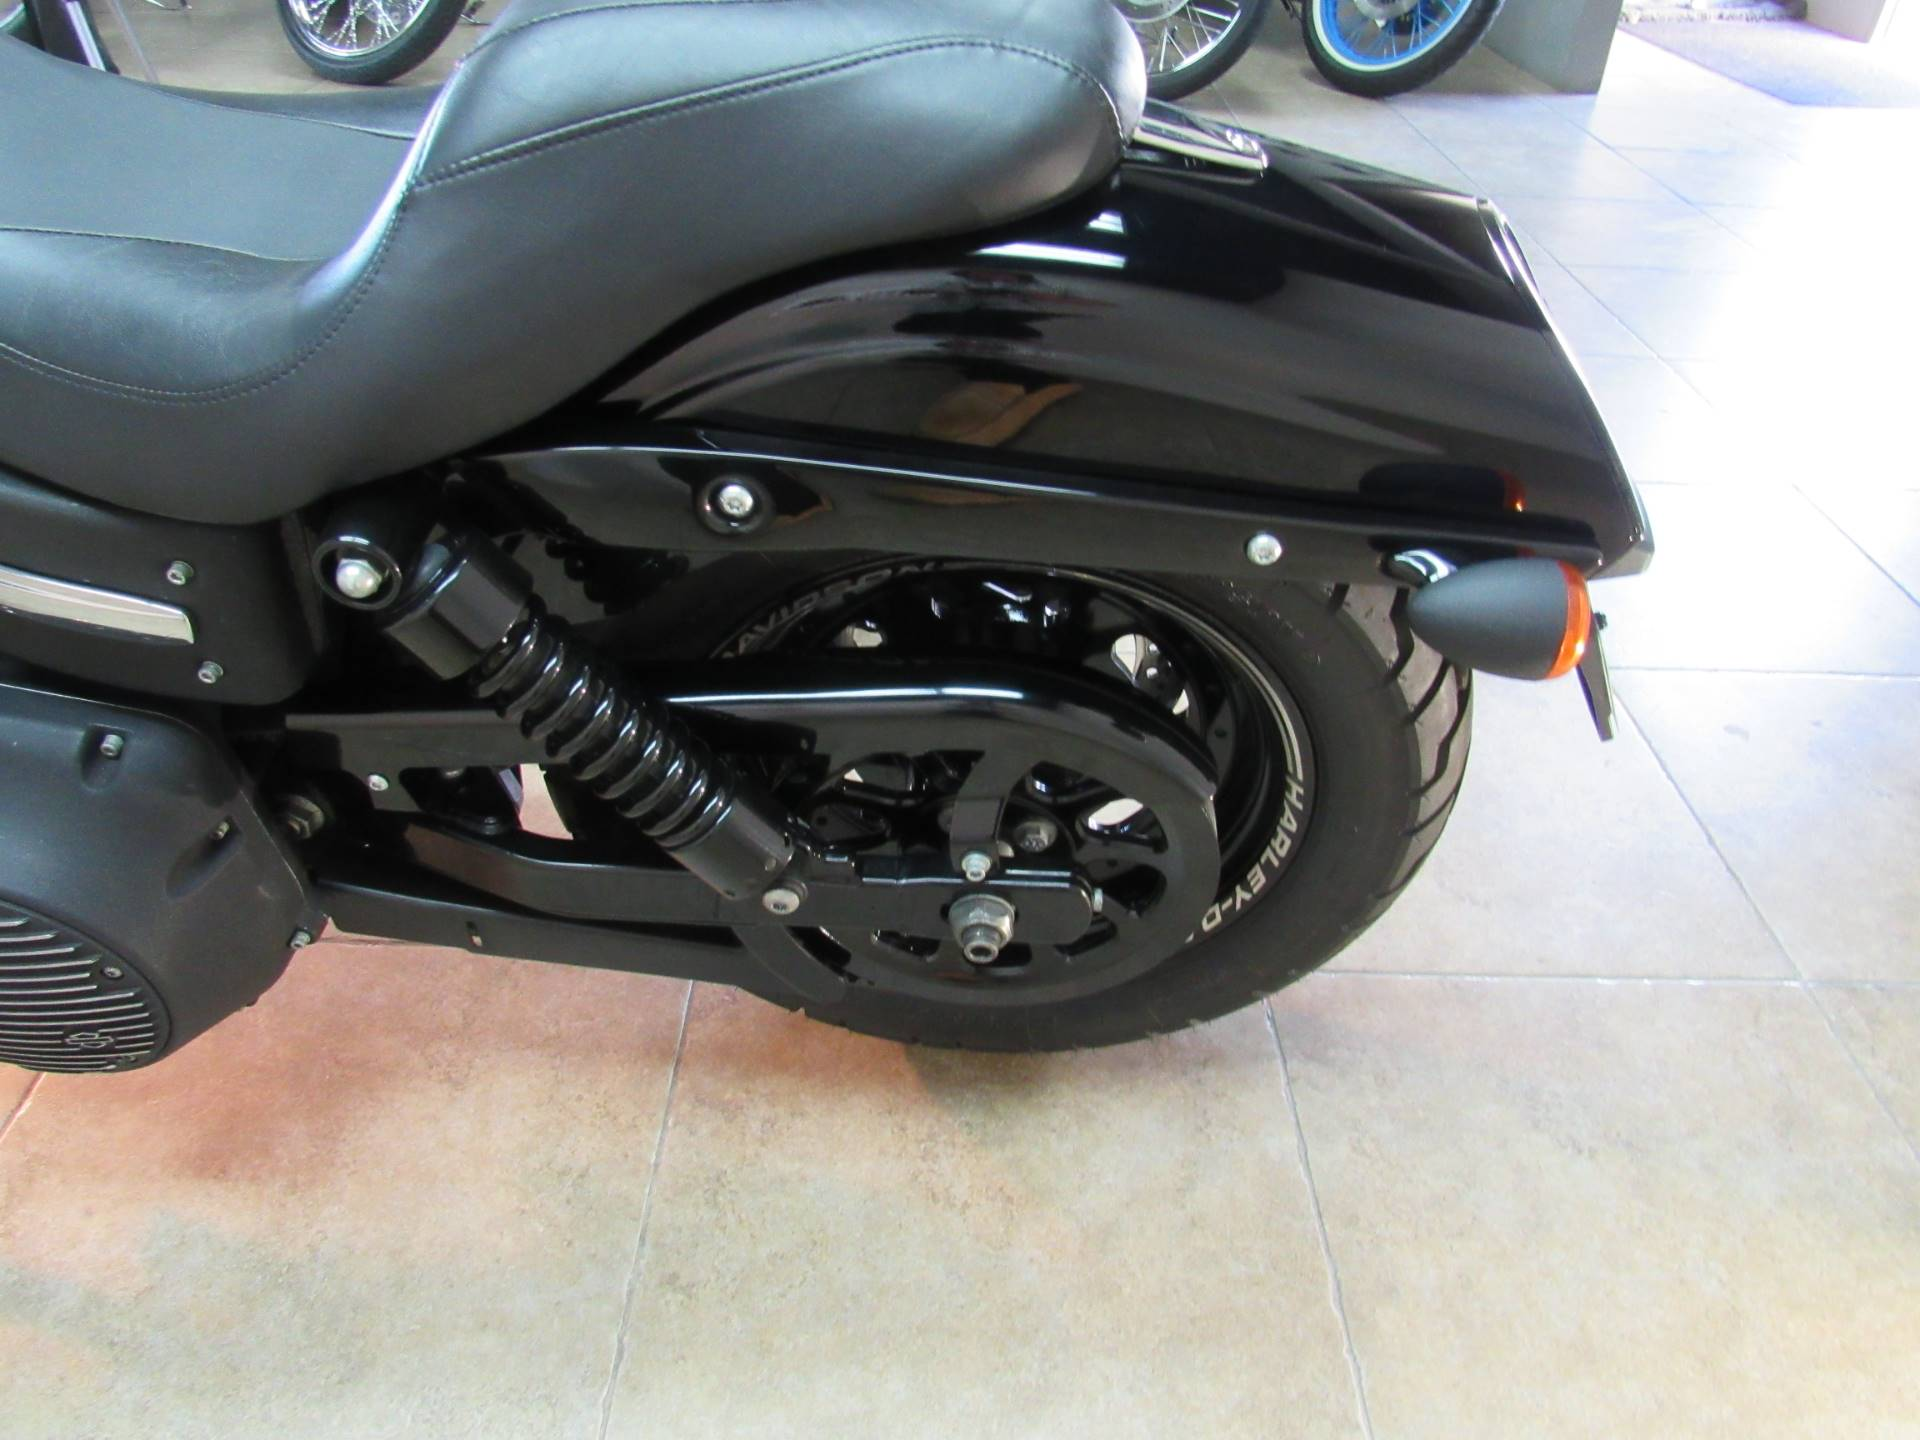 2008 Harley-Davidson Dyna Fat Bob in Temecula, California